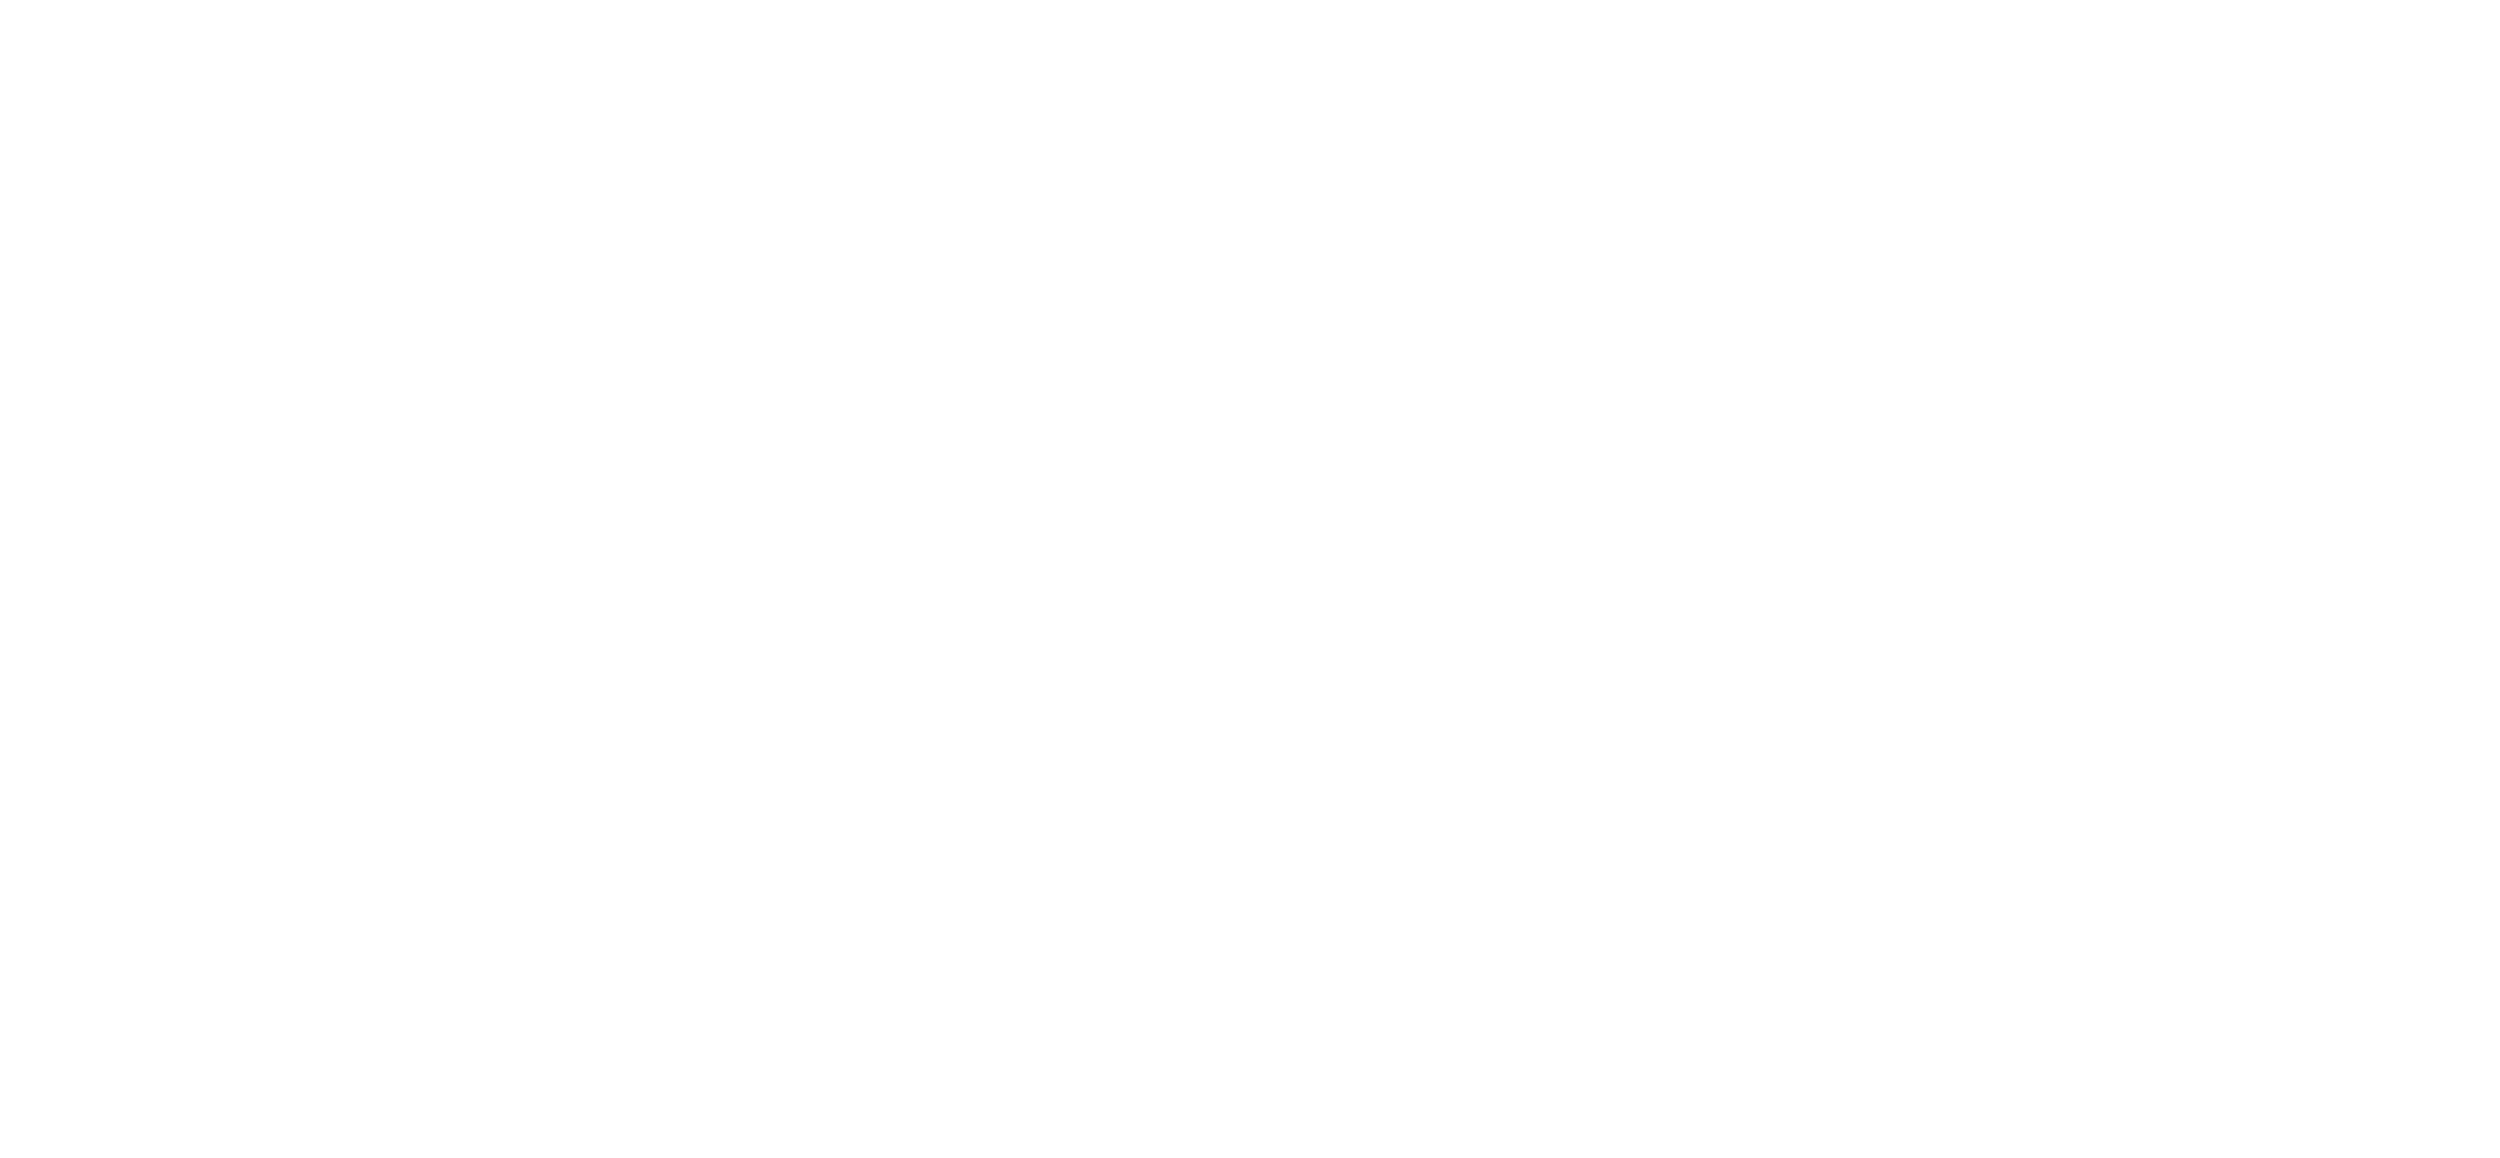 TownHall Project Logo